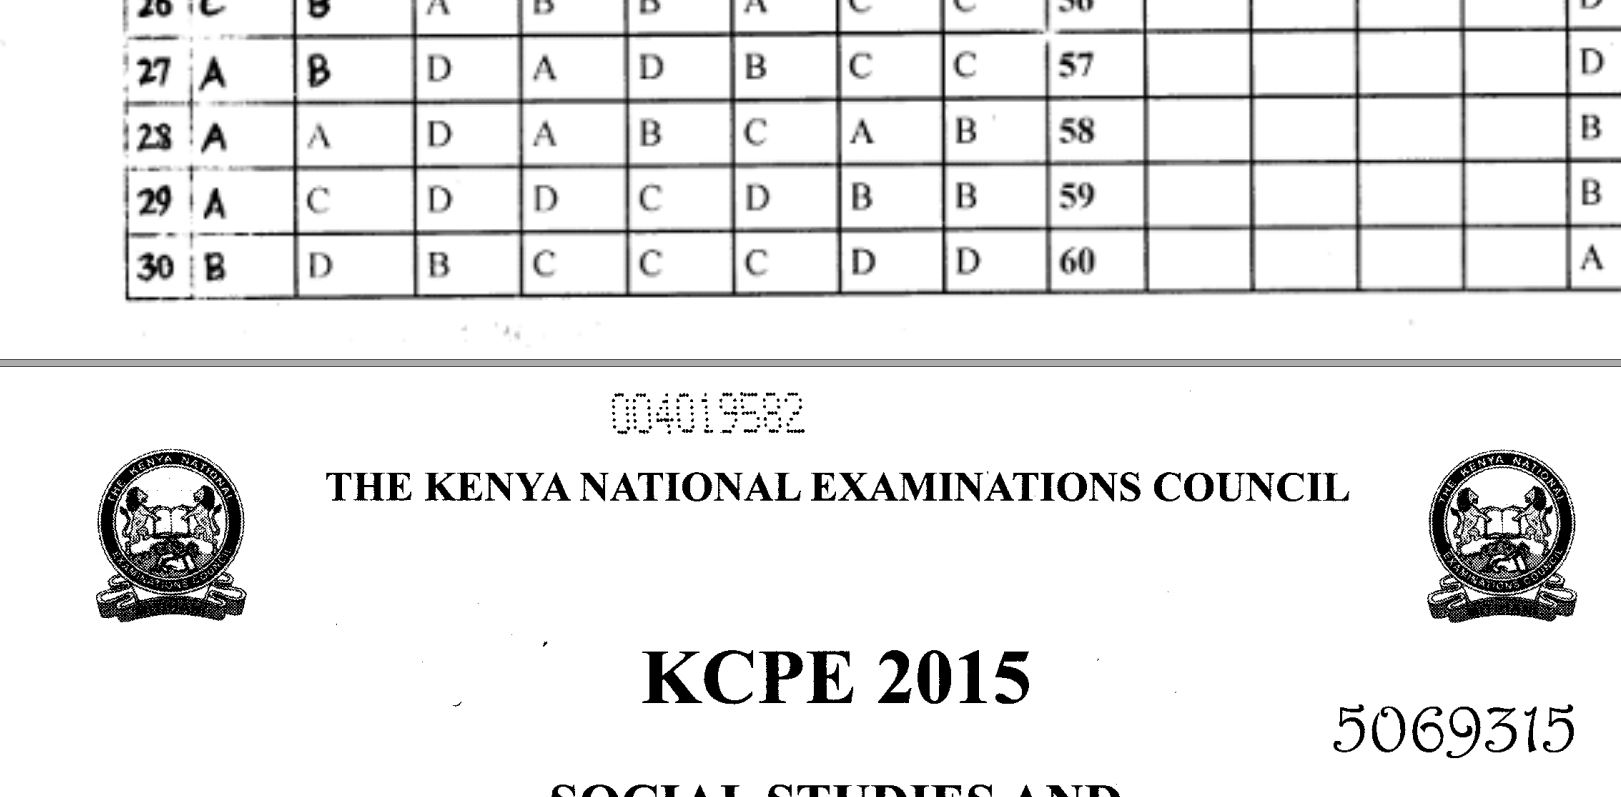 KNEC KCPE 2015 Past Papers with Answers (All Subjects) - Muthurwa  Marketplace